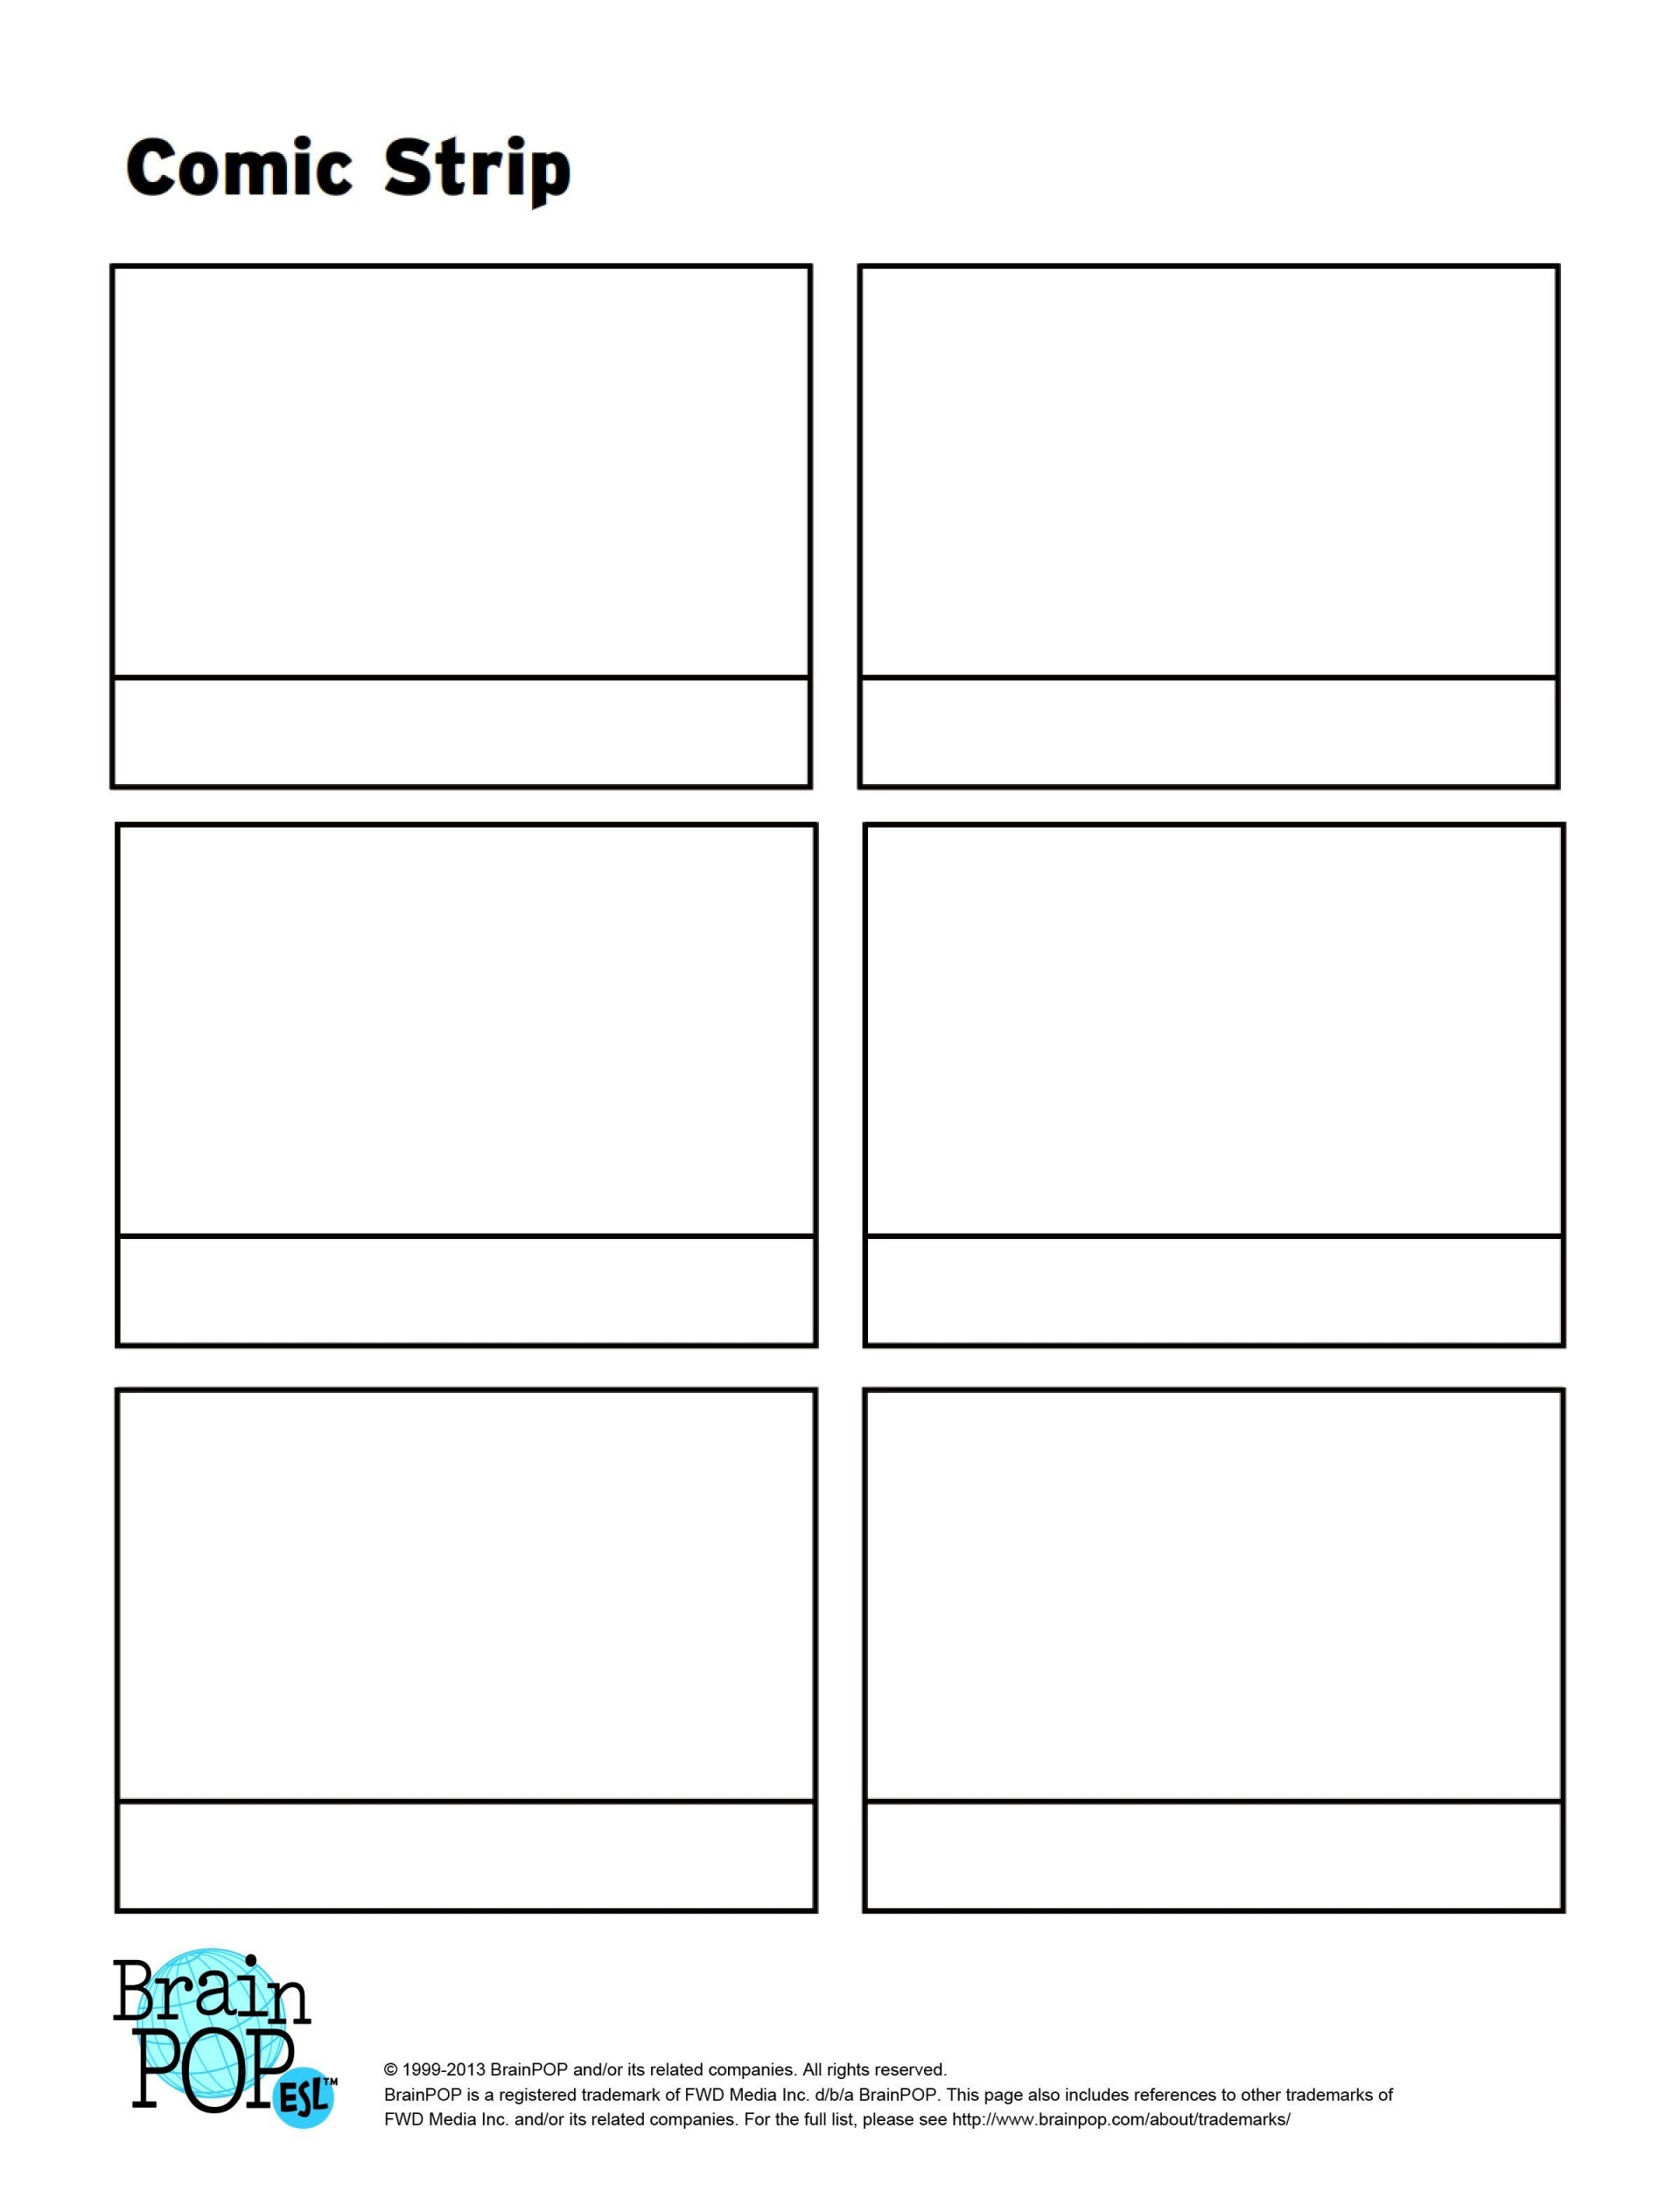 000 Remarkable Free Comic Strip Template Word Idea 1920